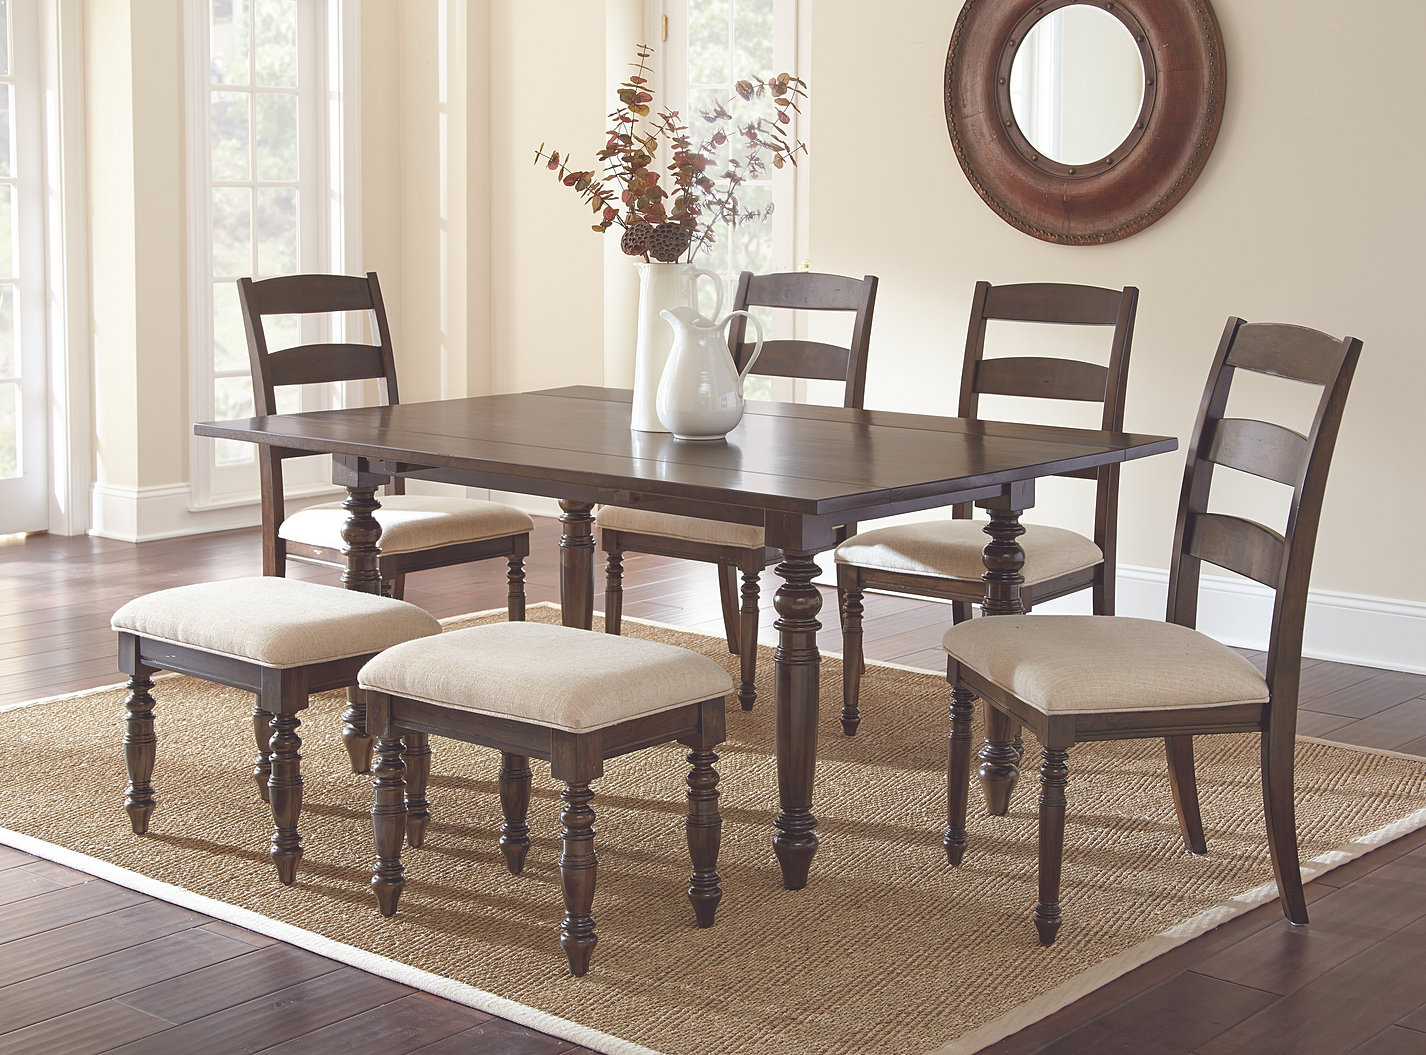 Exceptional DINING ROOM COLLECTION. Fowler. Fowler. Lauren Wells Home